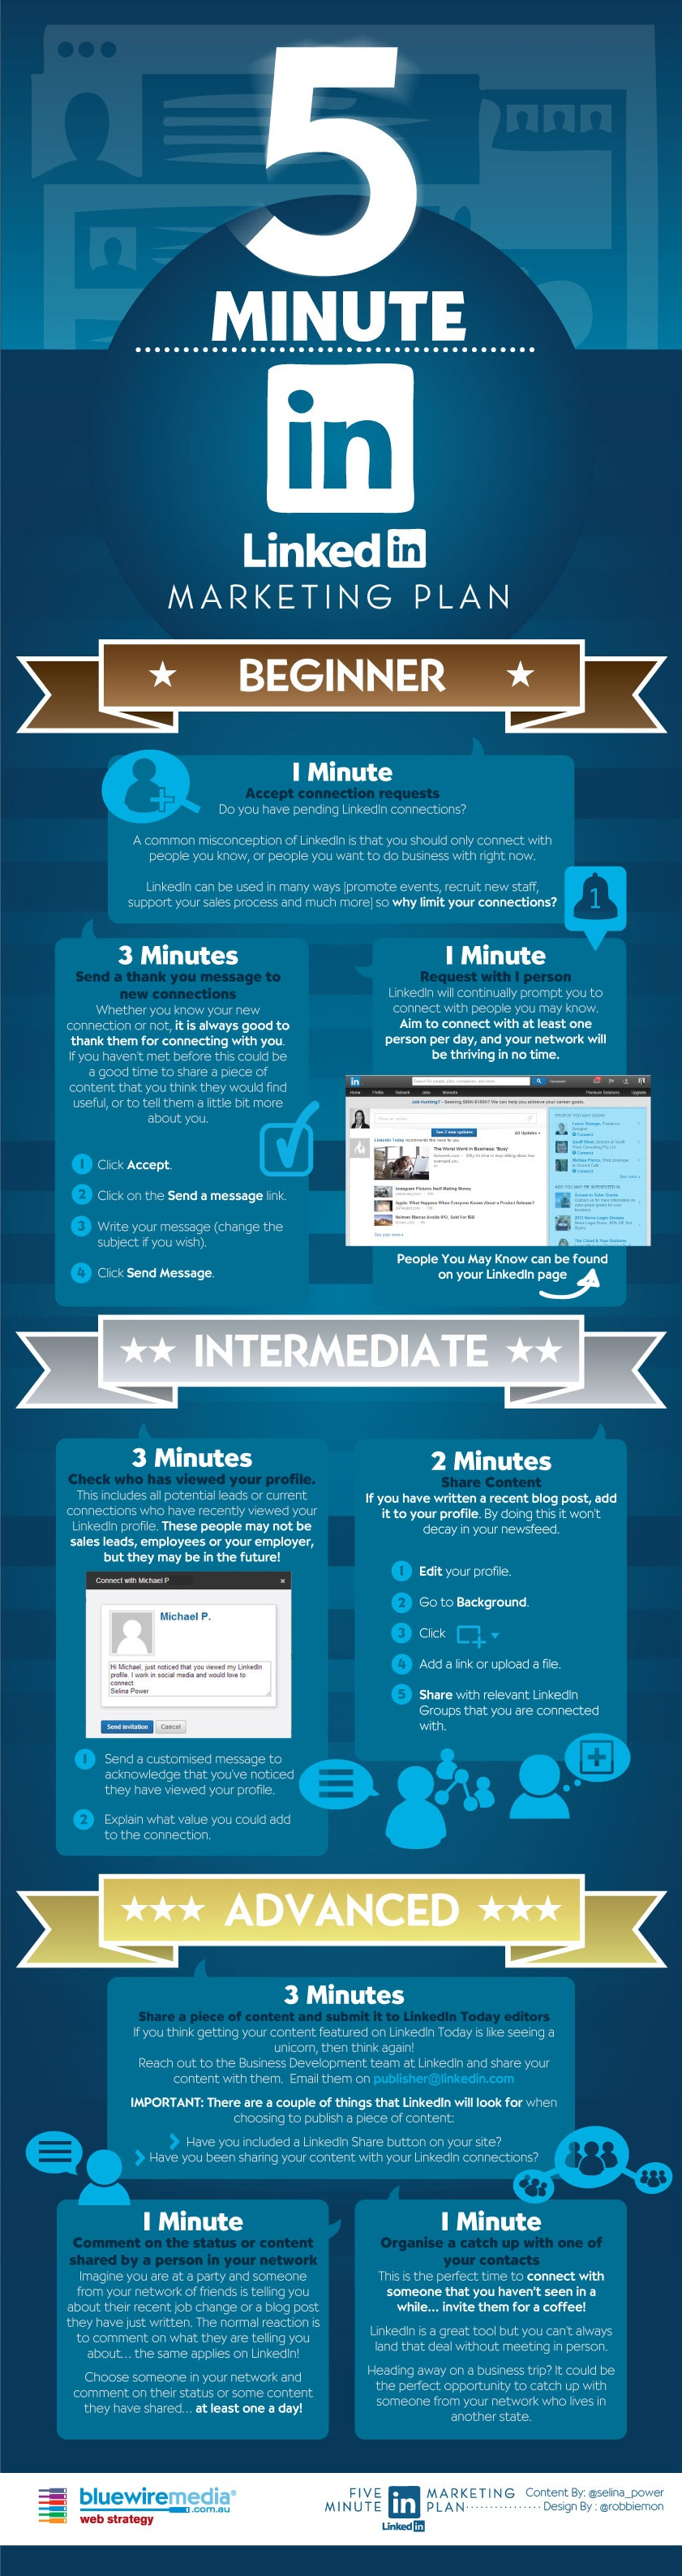 5-Minute-Linkedin-Mangement-Plan-for-Users-of-All-Levels-Infographic